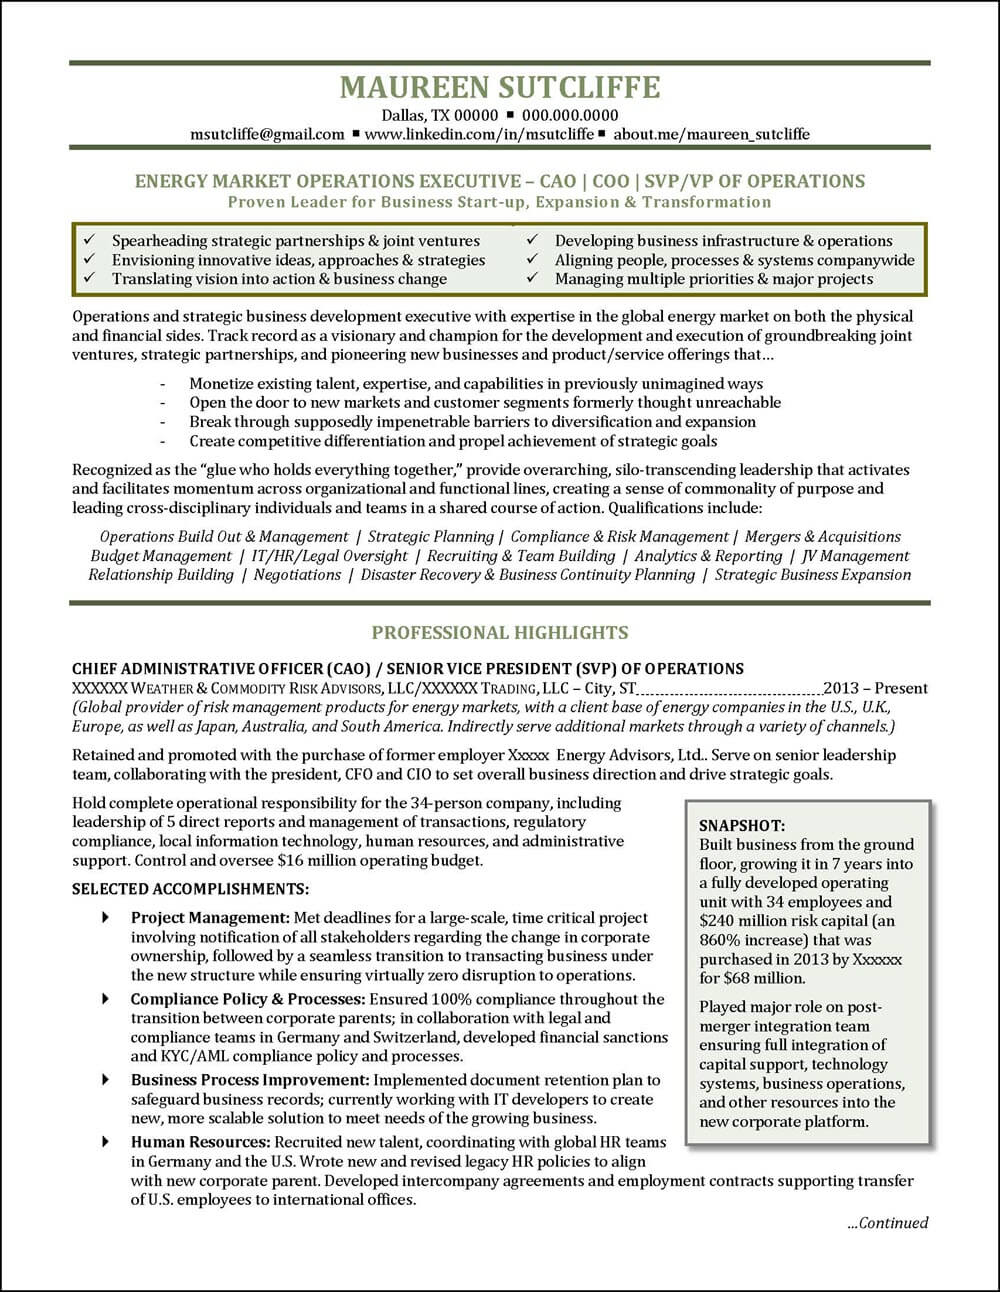 Example Energy Industry Executive Resume pg 1